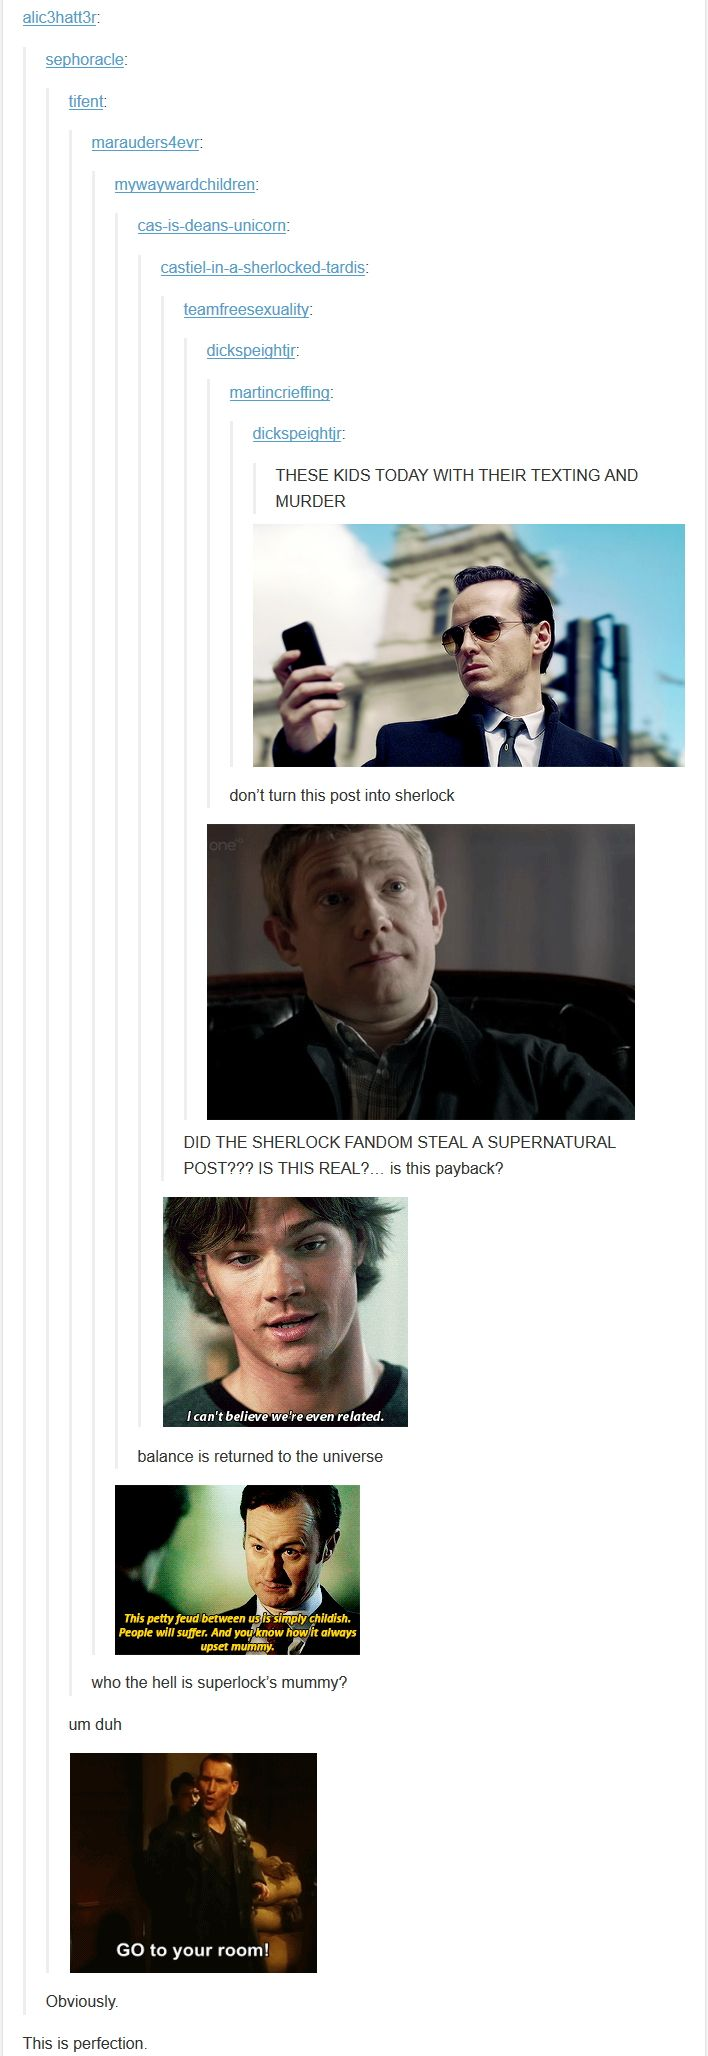 Amazing, SUPERNATURAL, DOCTOR WHO, SHERLOCK, TUMBLR, HUMOR, FUNNY, POST STEALING, ARE YOU MY MUMMY?! NERDS!!!! SUPERWHOLOCK